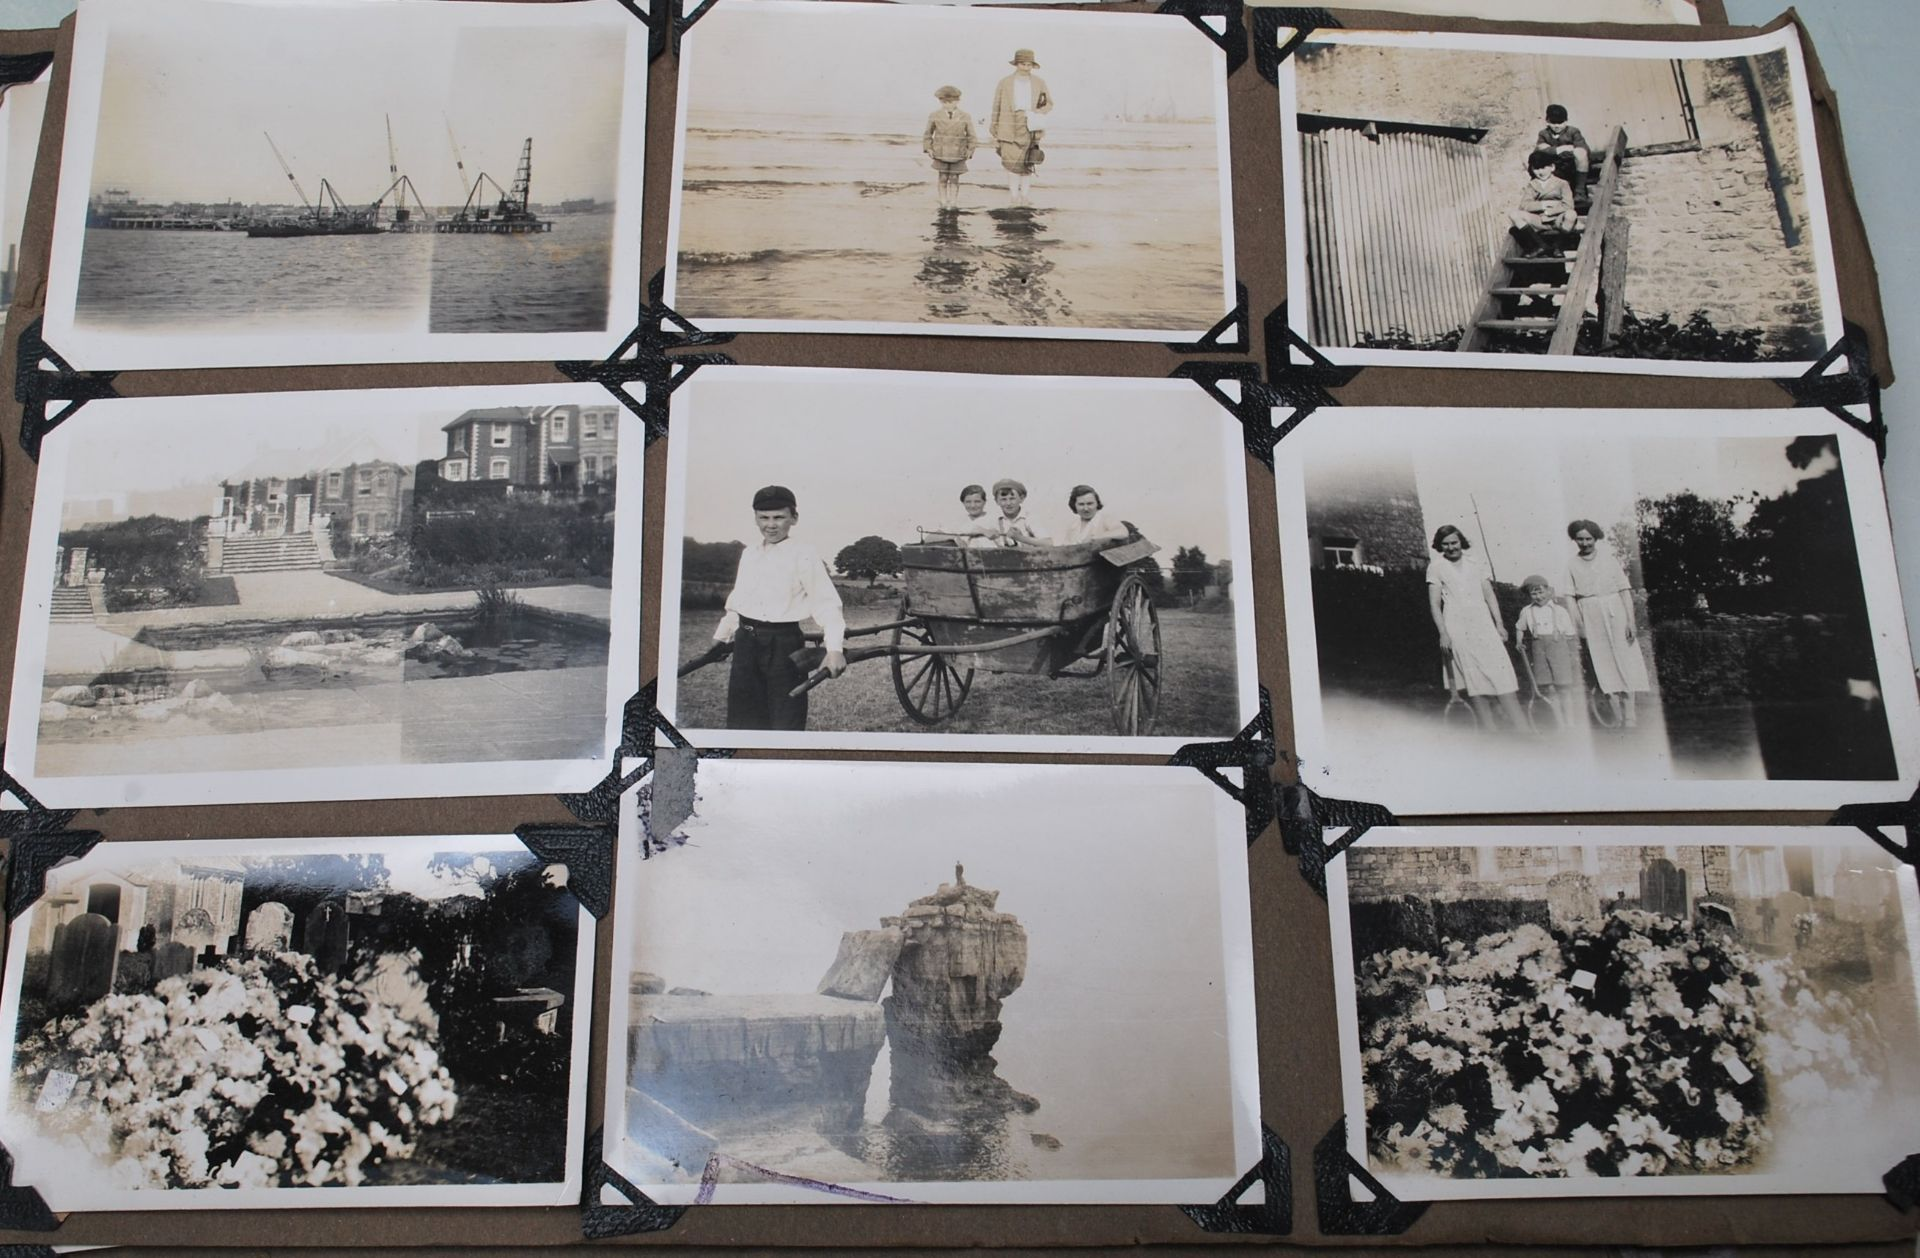 EARLY 20TH CENTURY BLACK AND WHITE PHOTO ALBUM - Image 7 of 14